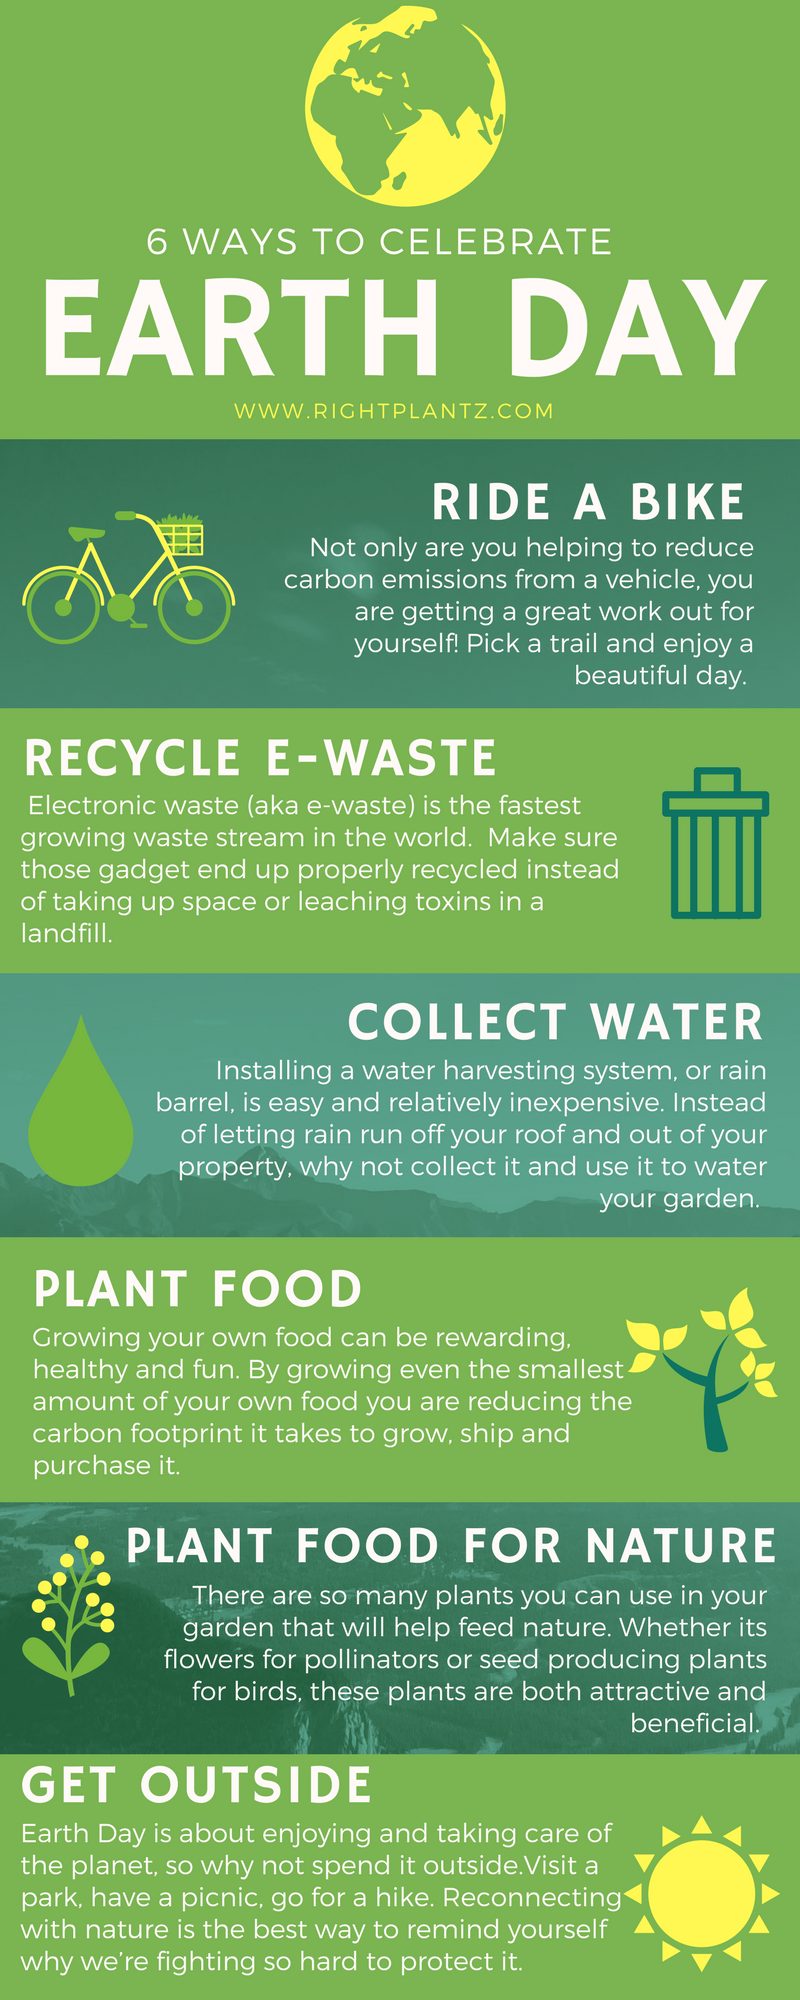 51fa88c2b2bfc1a89a1038e1f5d48ab8 - How Does Gardening Help The Environment